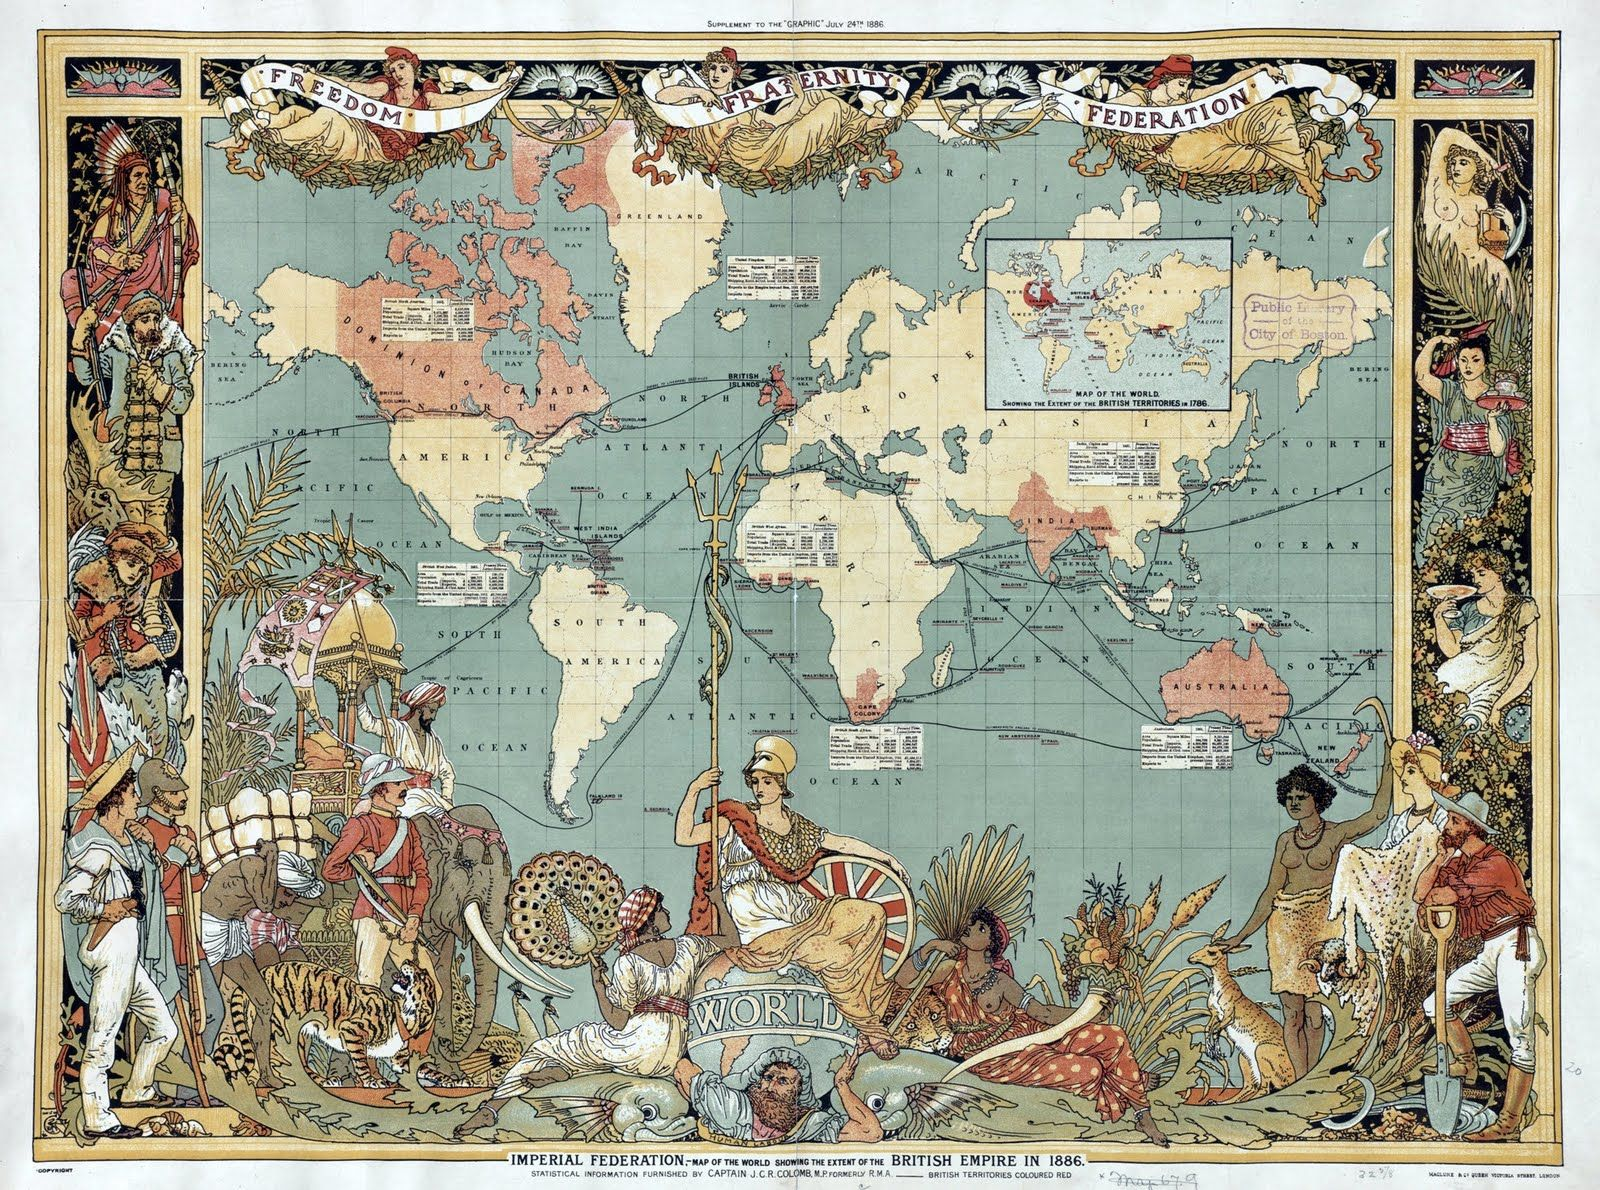 Political world map illustrated by the english artist walter crane political world map illustrated by the english artist walter crane showing the extent of the british empire in 1886 gumiabroncs Image collections